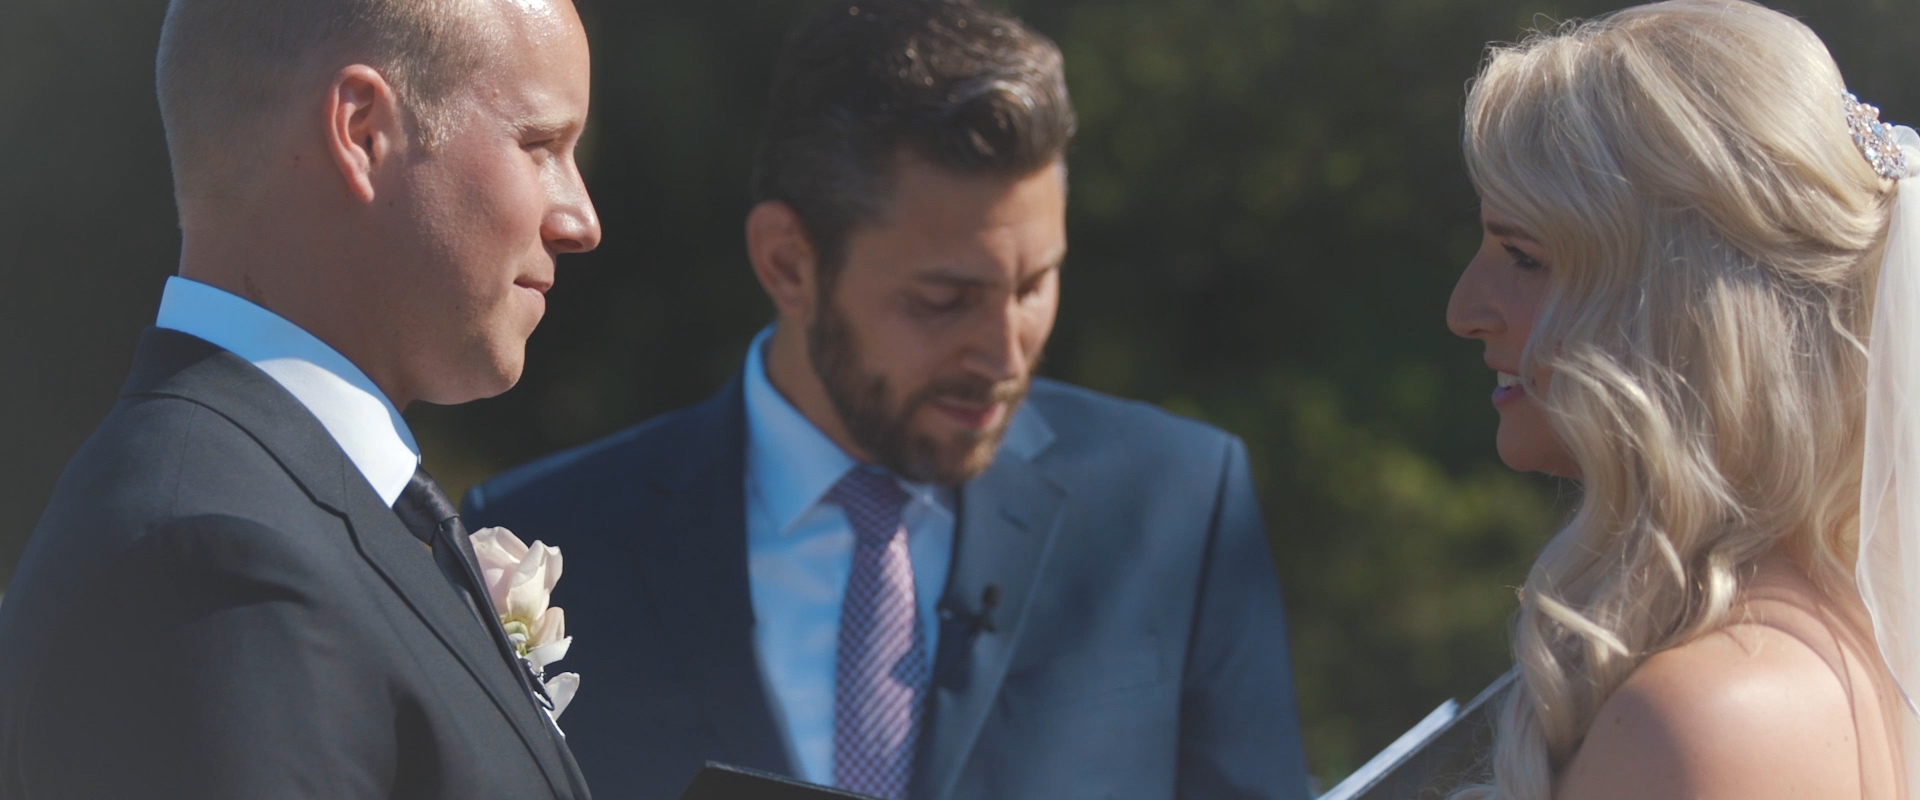 An image of a couple at their wedding ceremony; taken from a Toronto Wedding Video